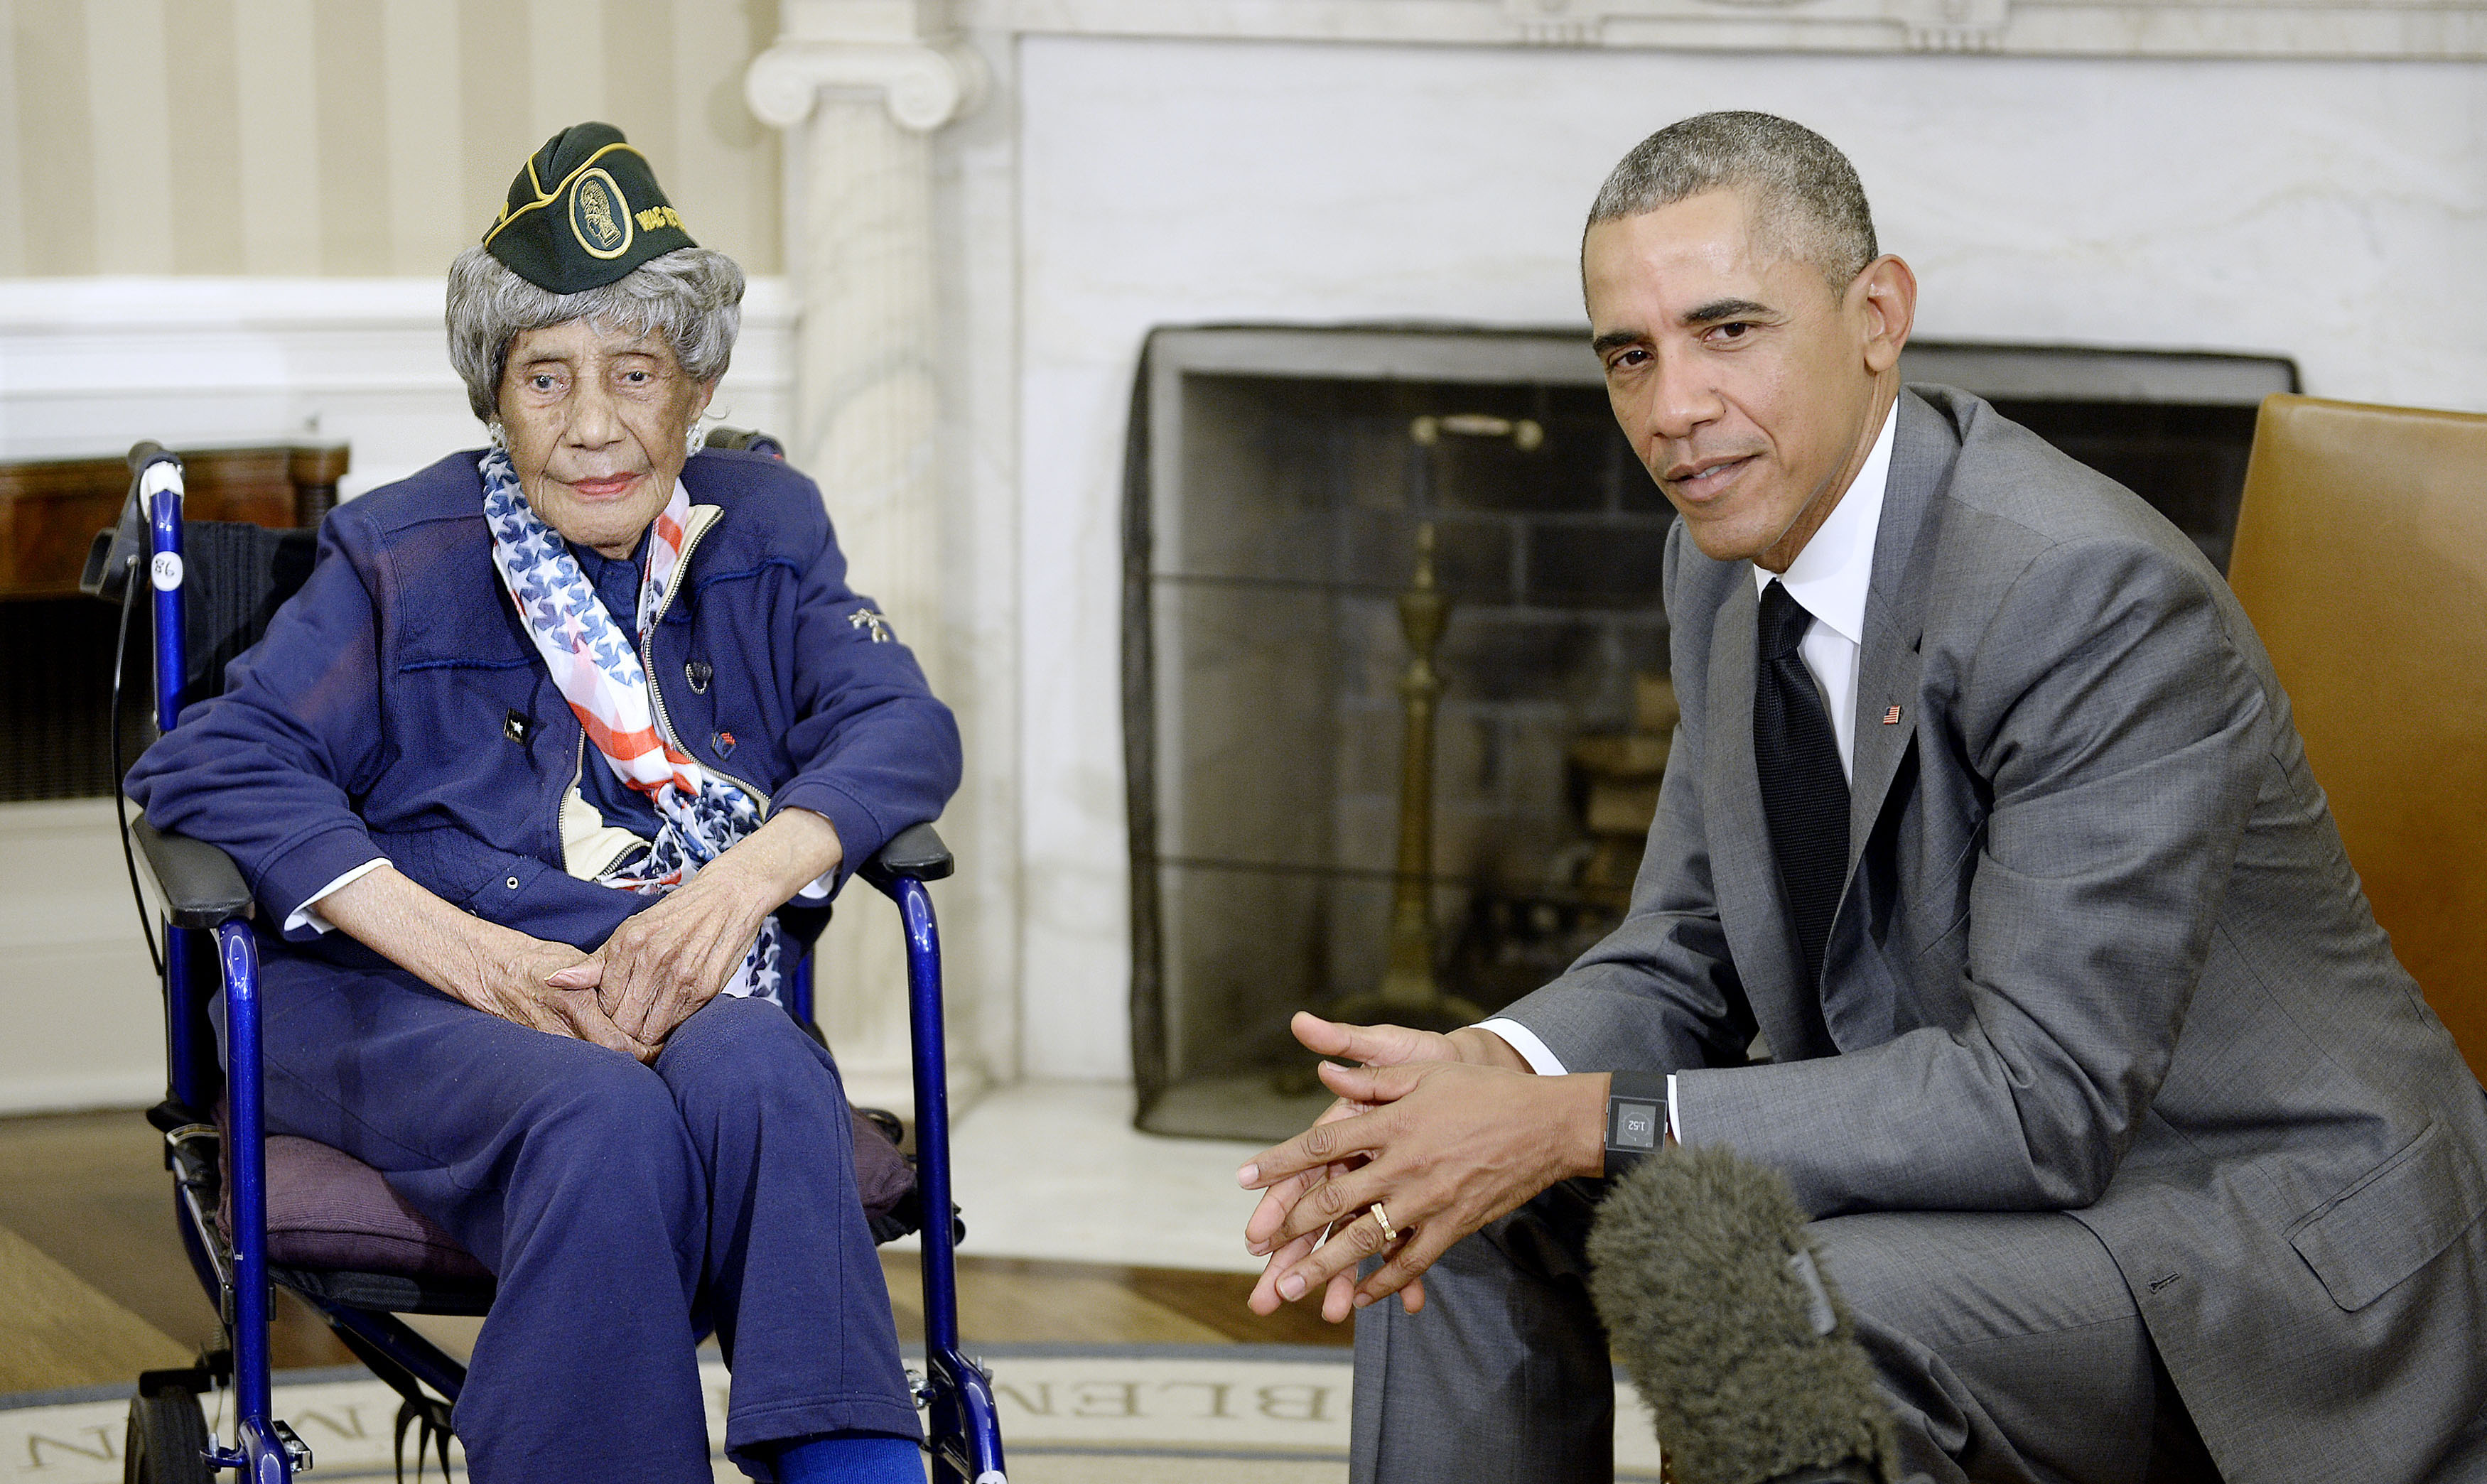 U.S. President Barack Obama meets with the oldest living veteran, 110-year-old Emma Didlake, in the Oval Office of the White House on July 17, 2015 in Washington, D.C.